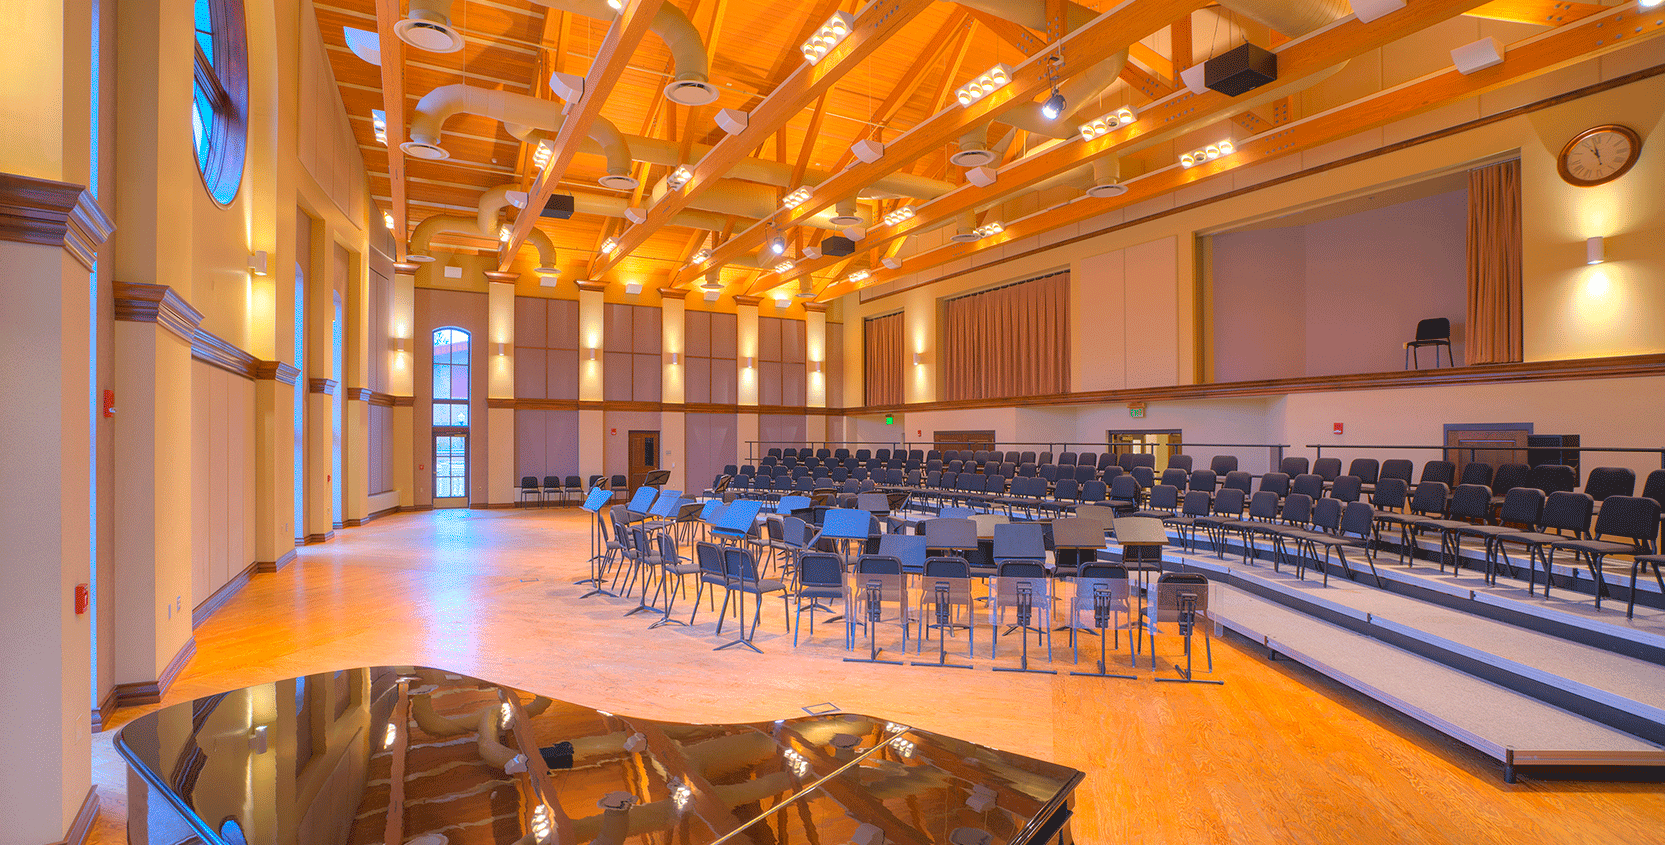 Hillsdale-College-John-and-Dede-Howard-Music-Hall-Renovation-2-1665x845